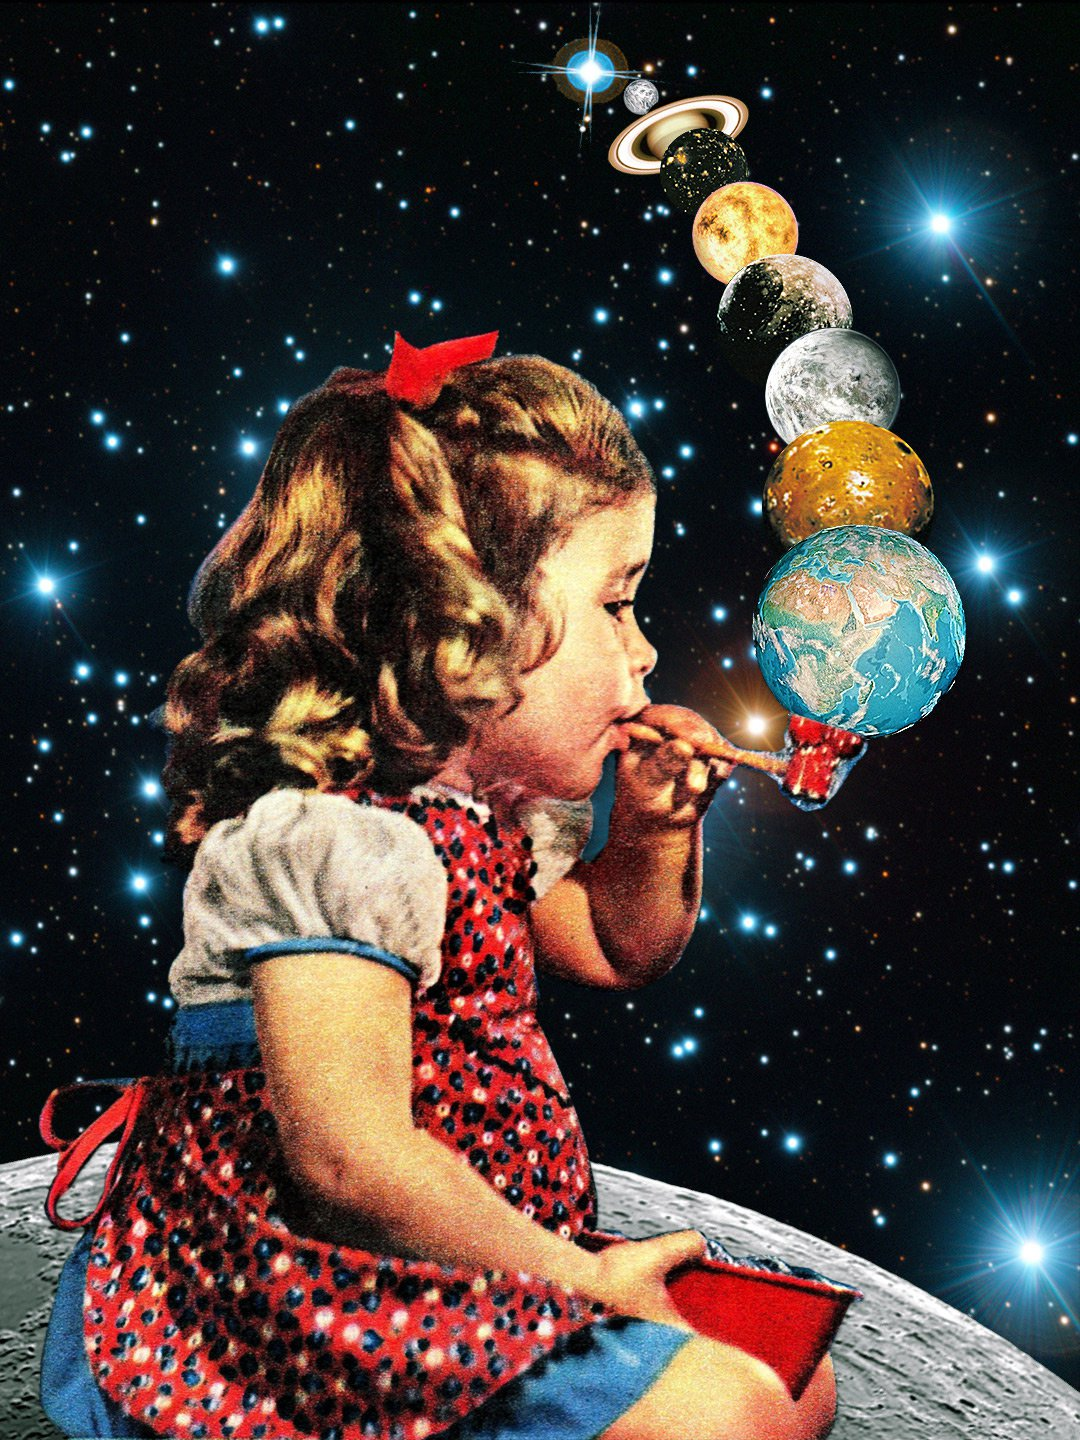 Eugenia Loli collage Cultura Inquieta9